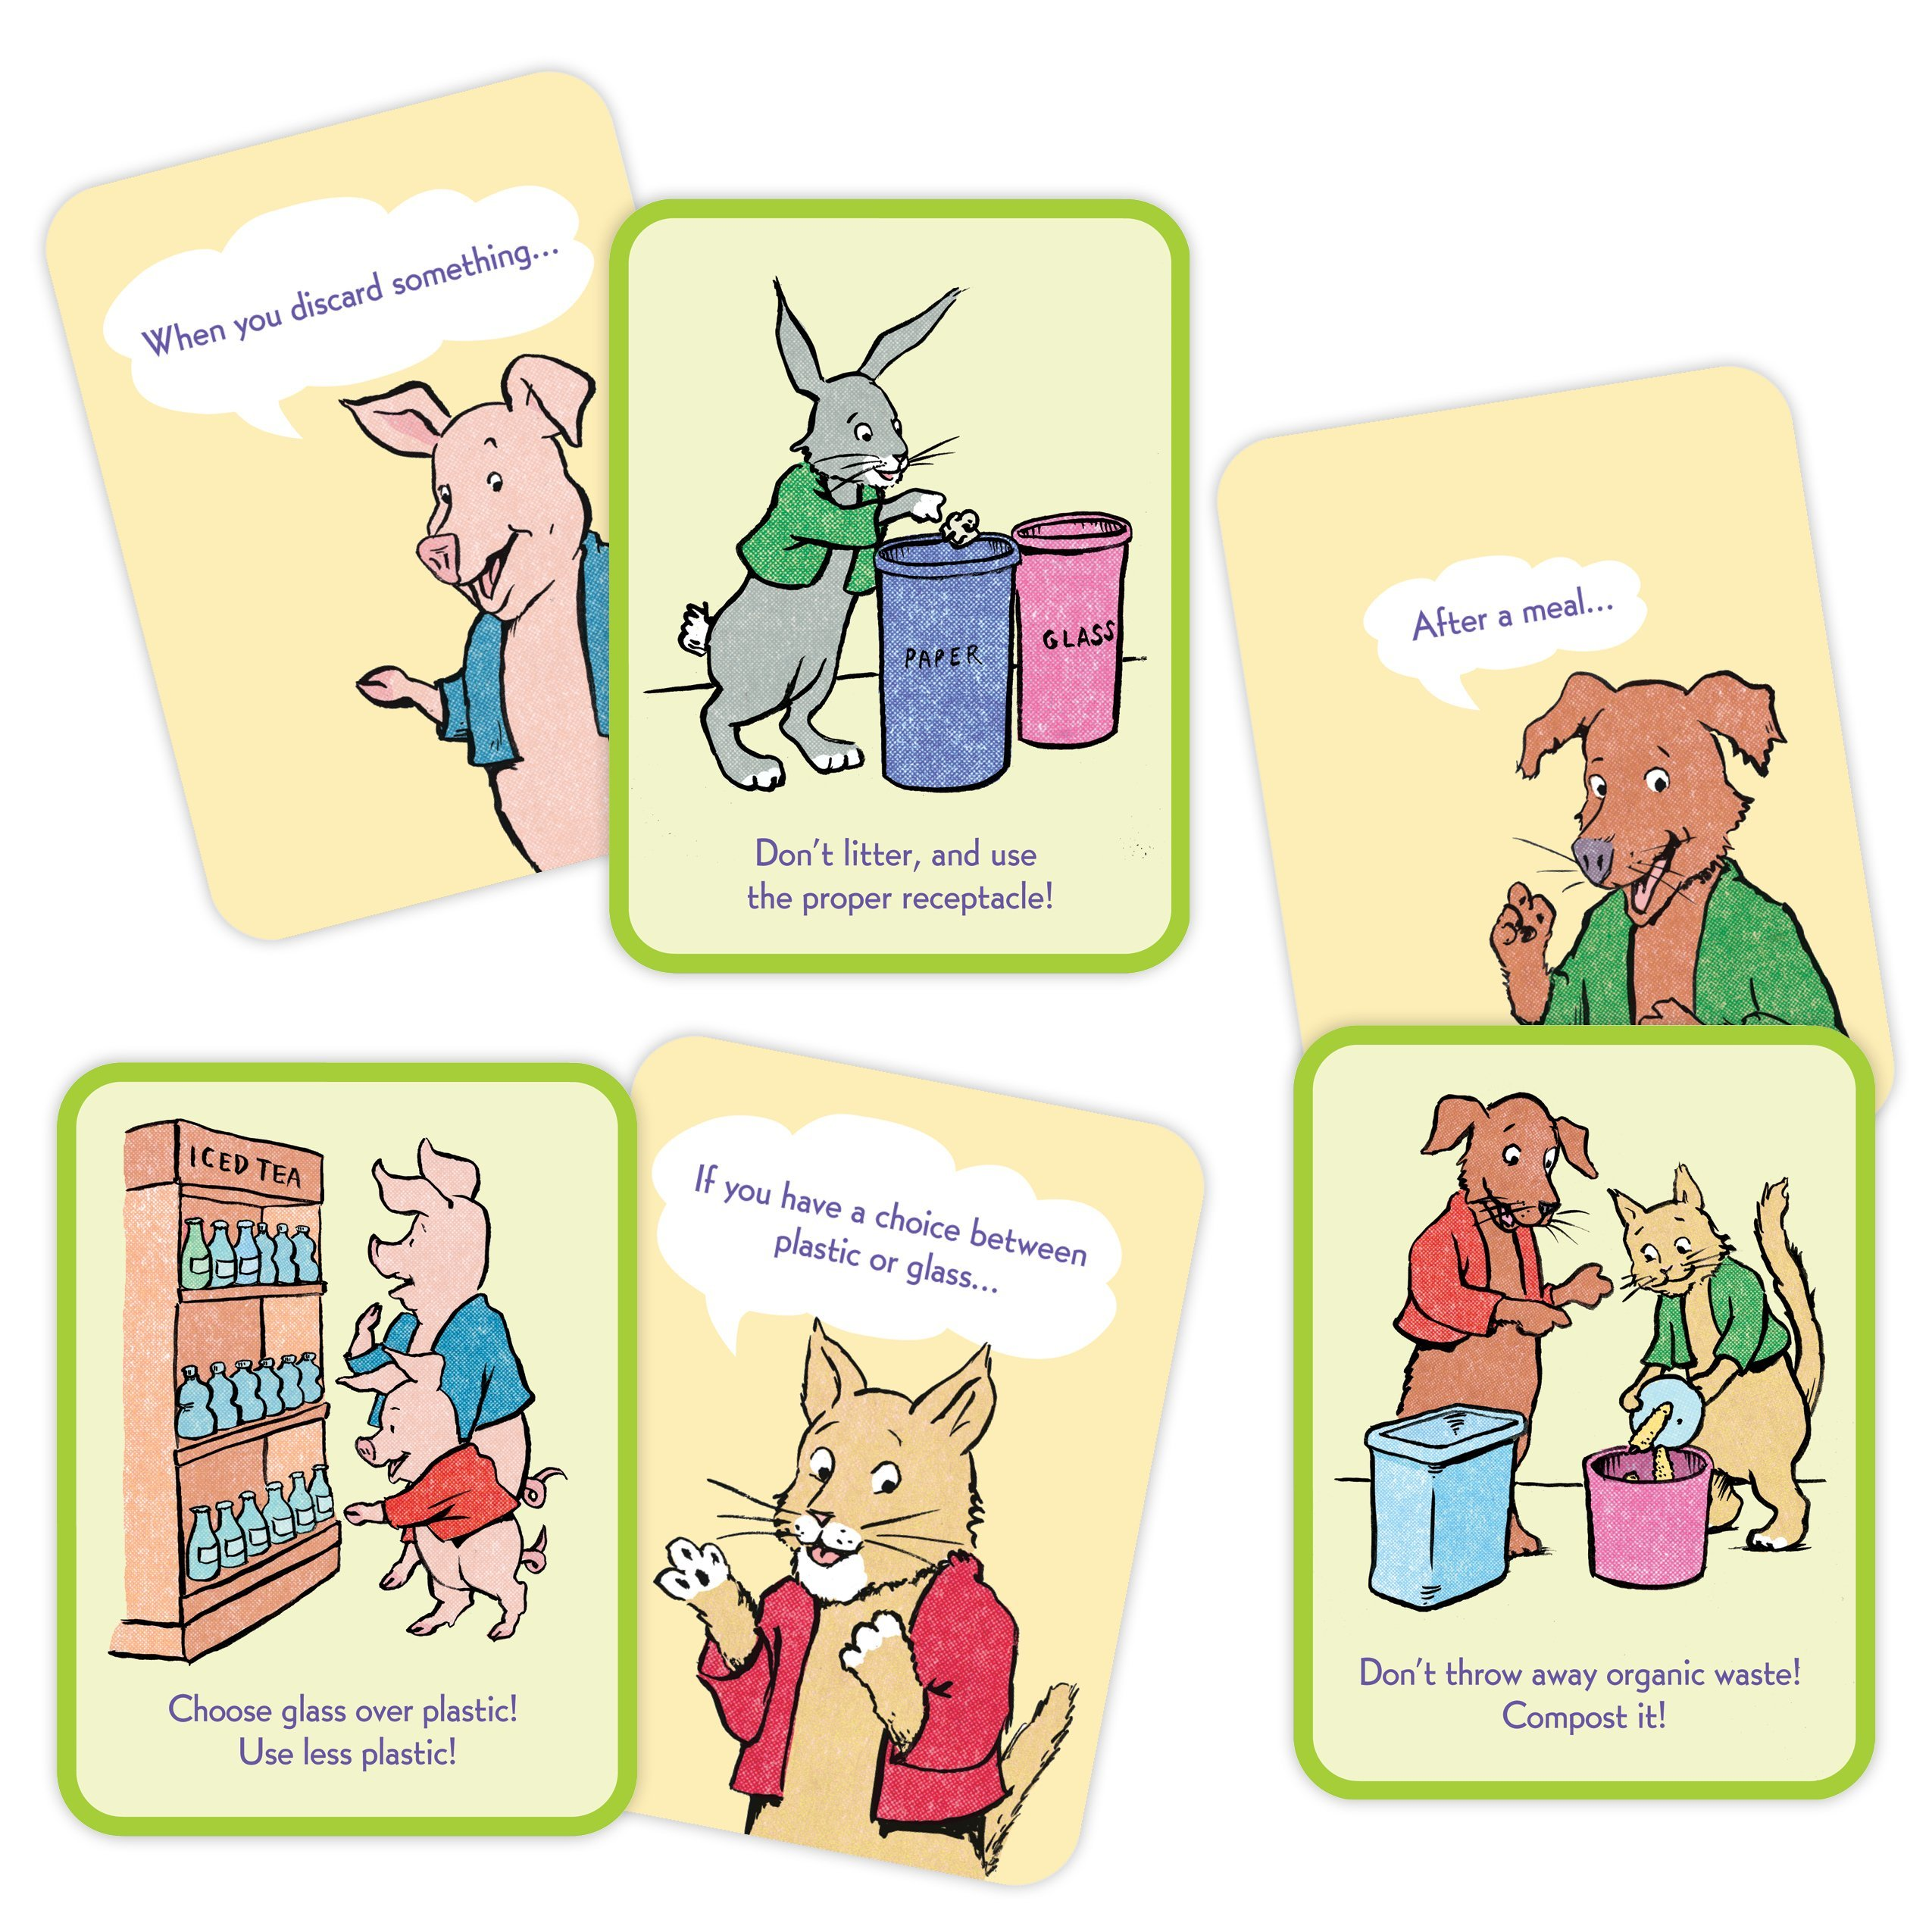 Examples of Respect The Earth Conversation Cards